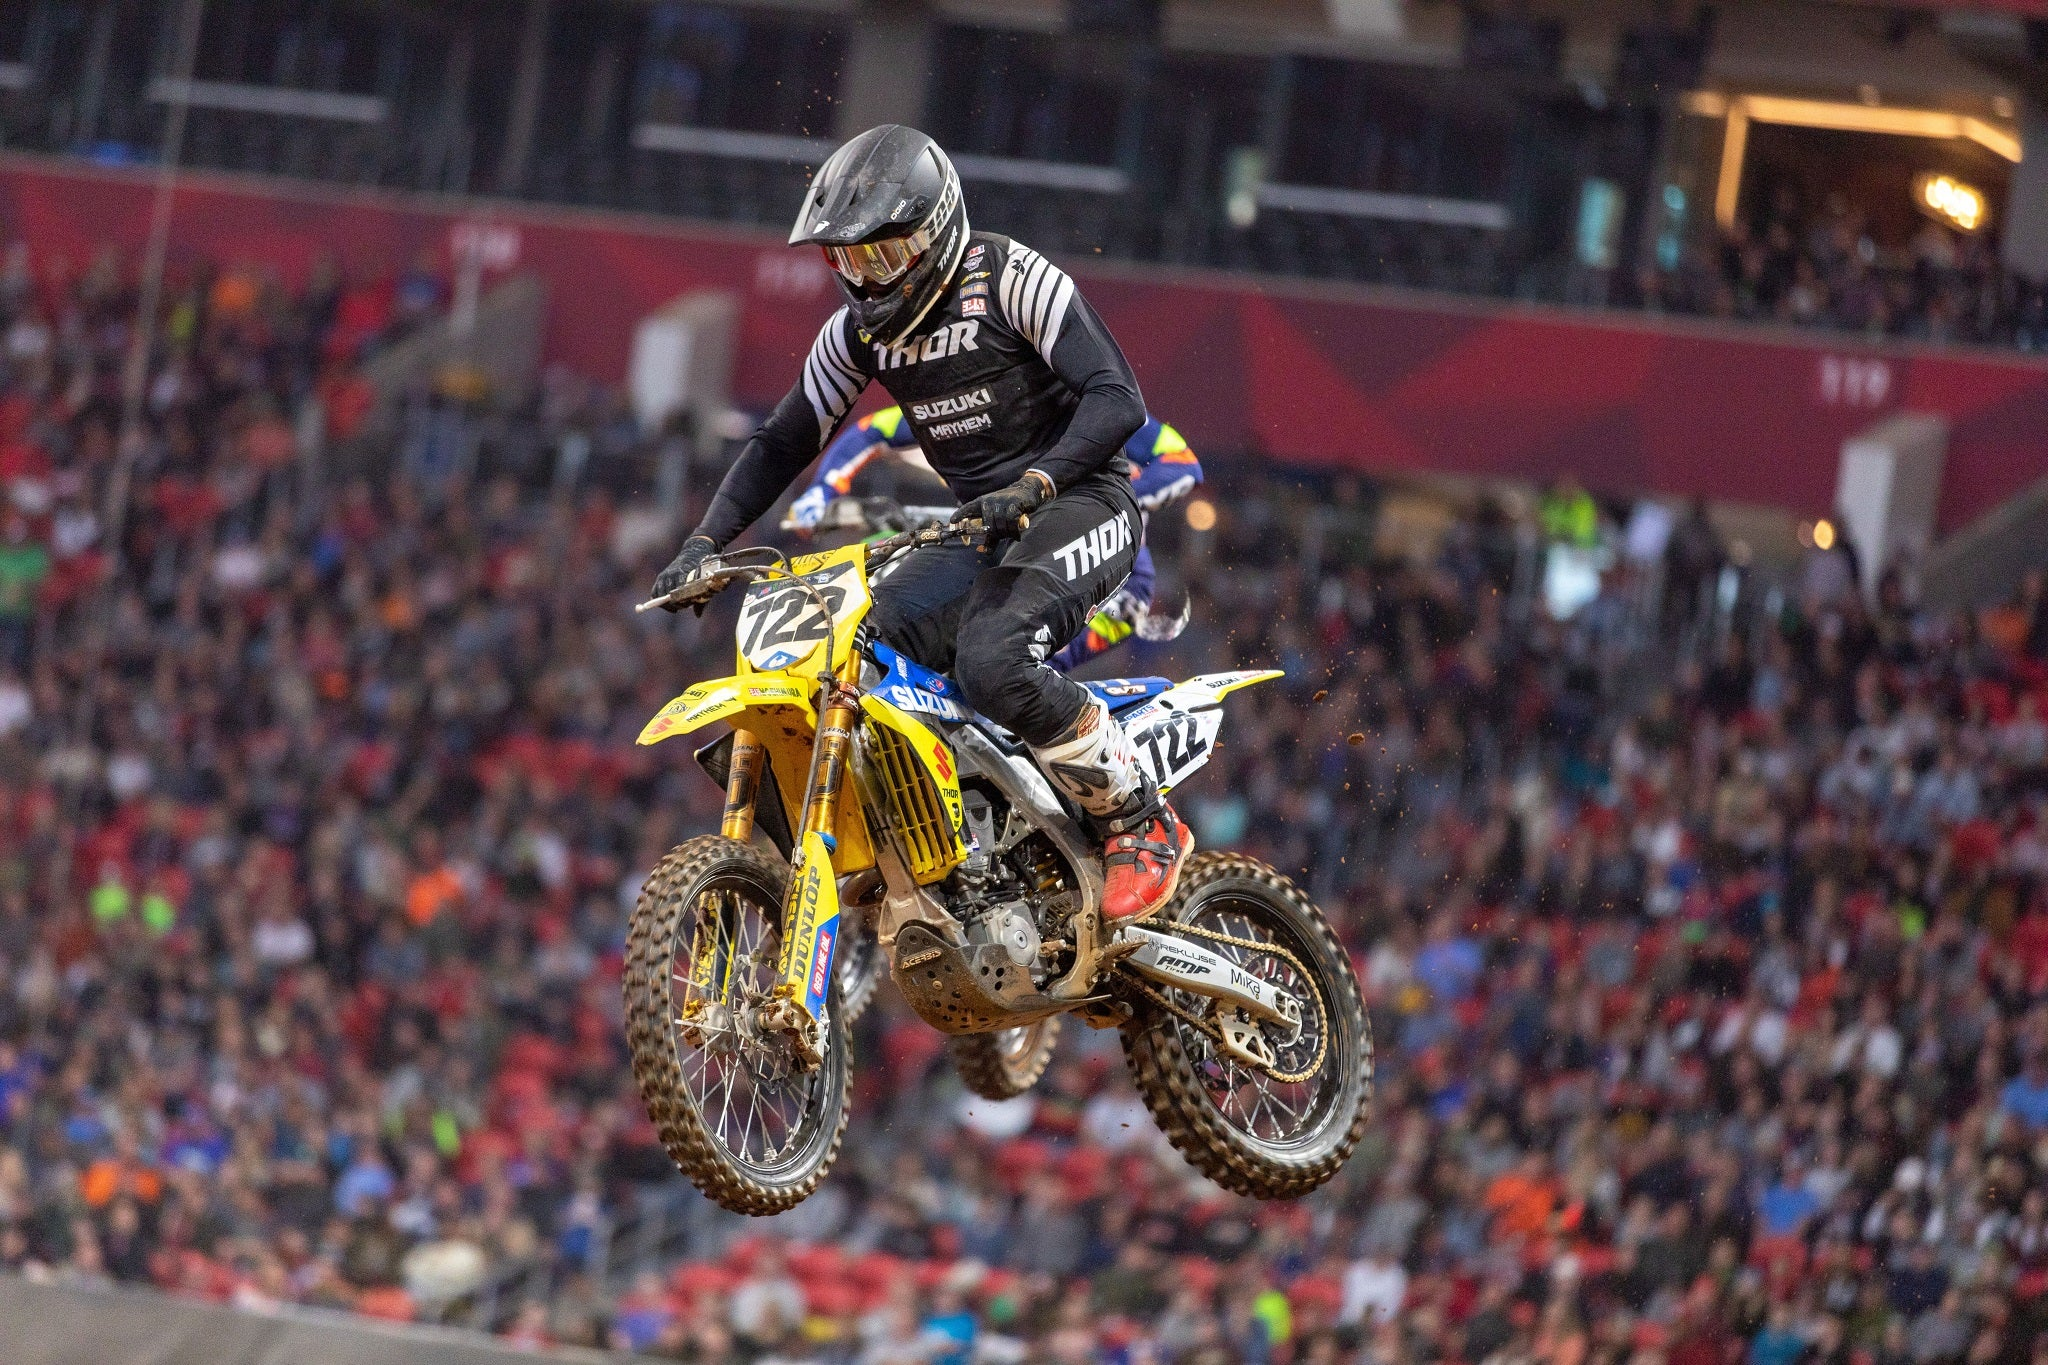 Adam Enticknap (#722) finishes in 17th place in the 450cc Premiere Class